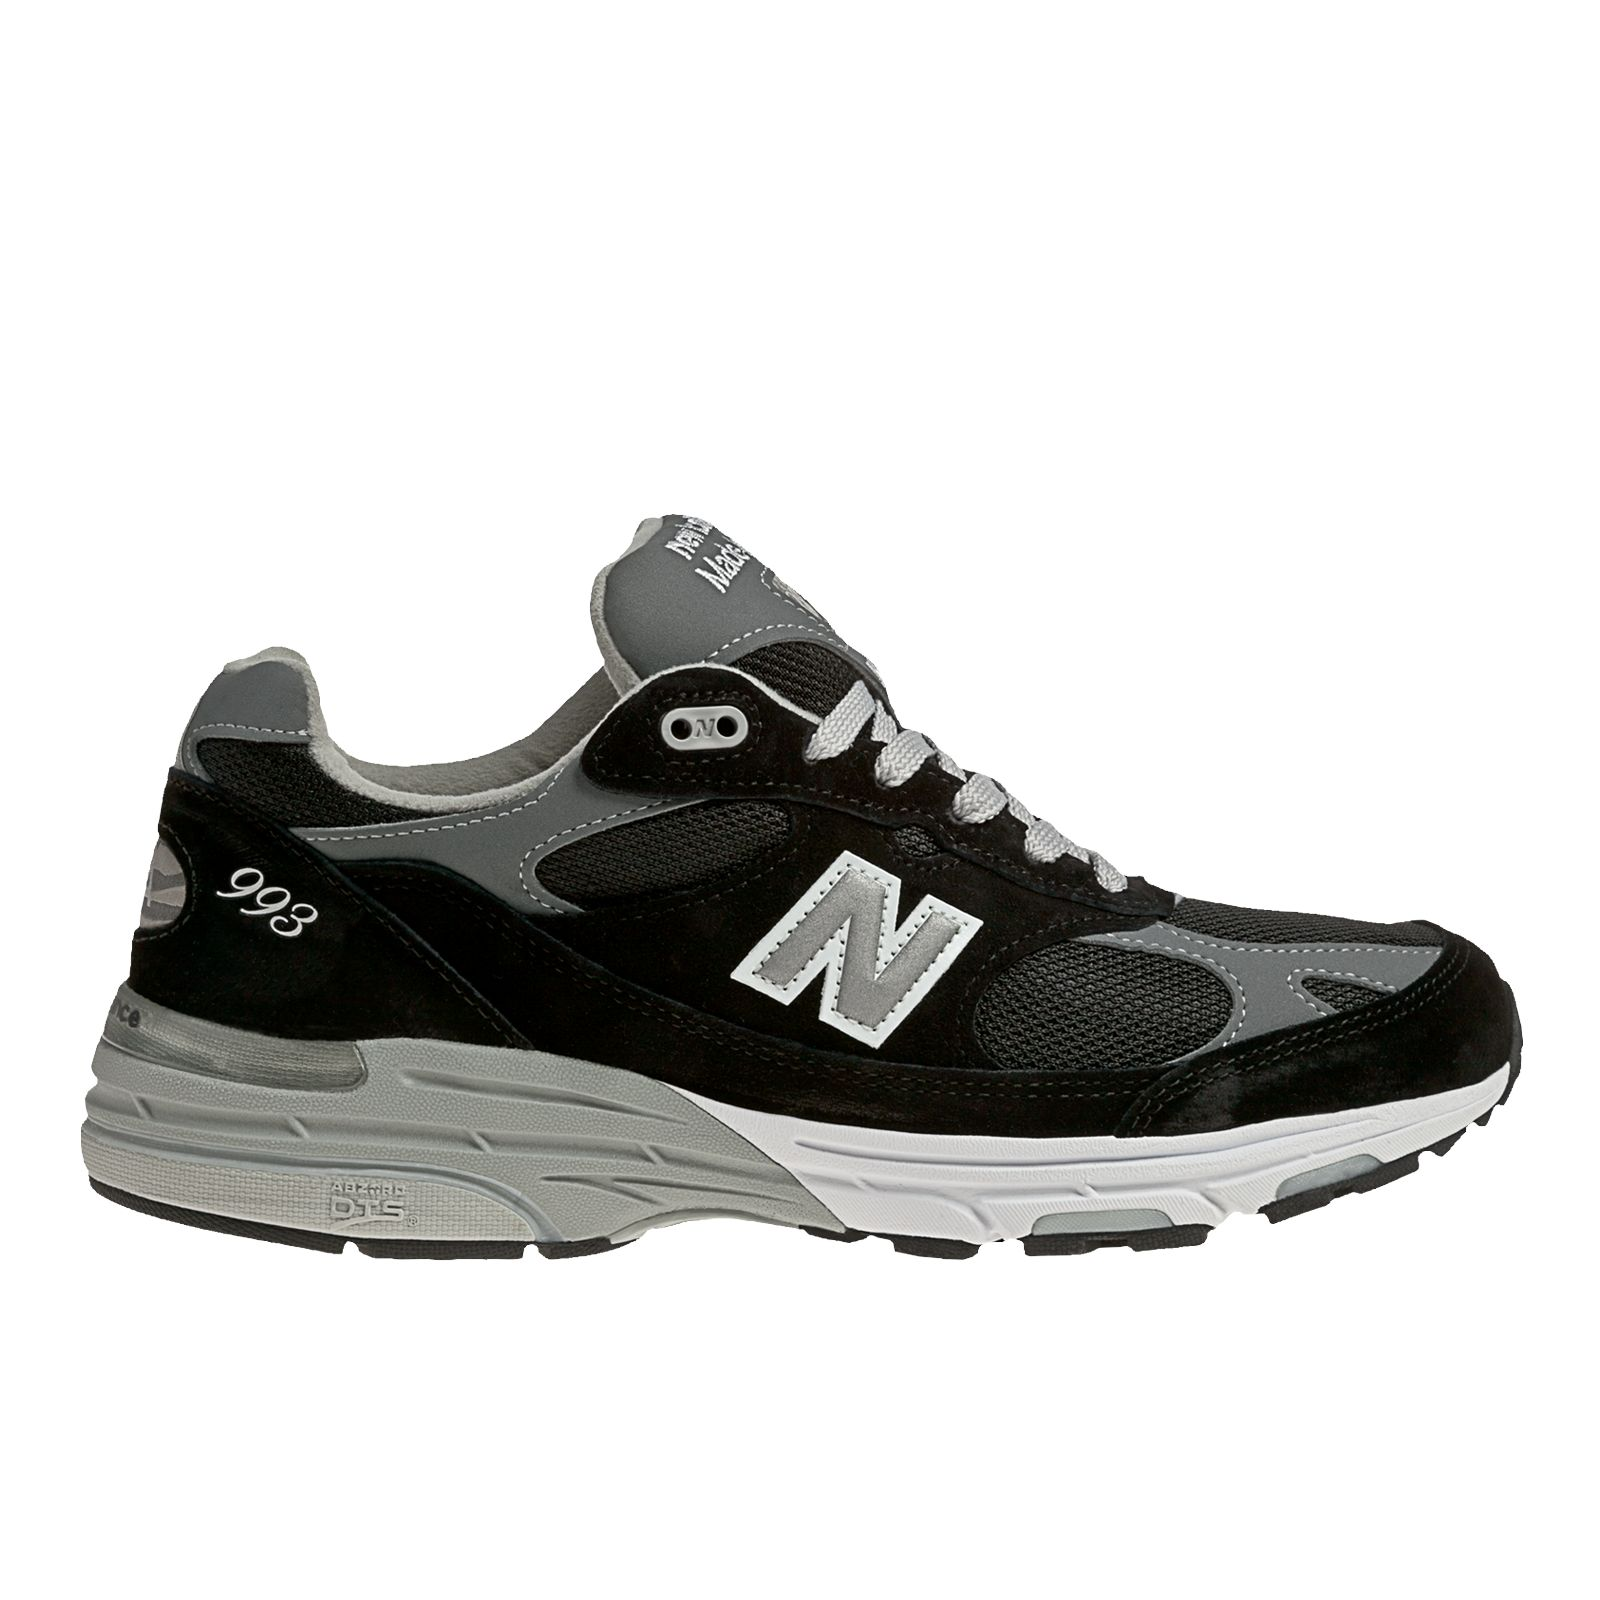 New Balance Mens Classics 993 Stability Running Shoes Black